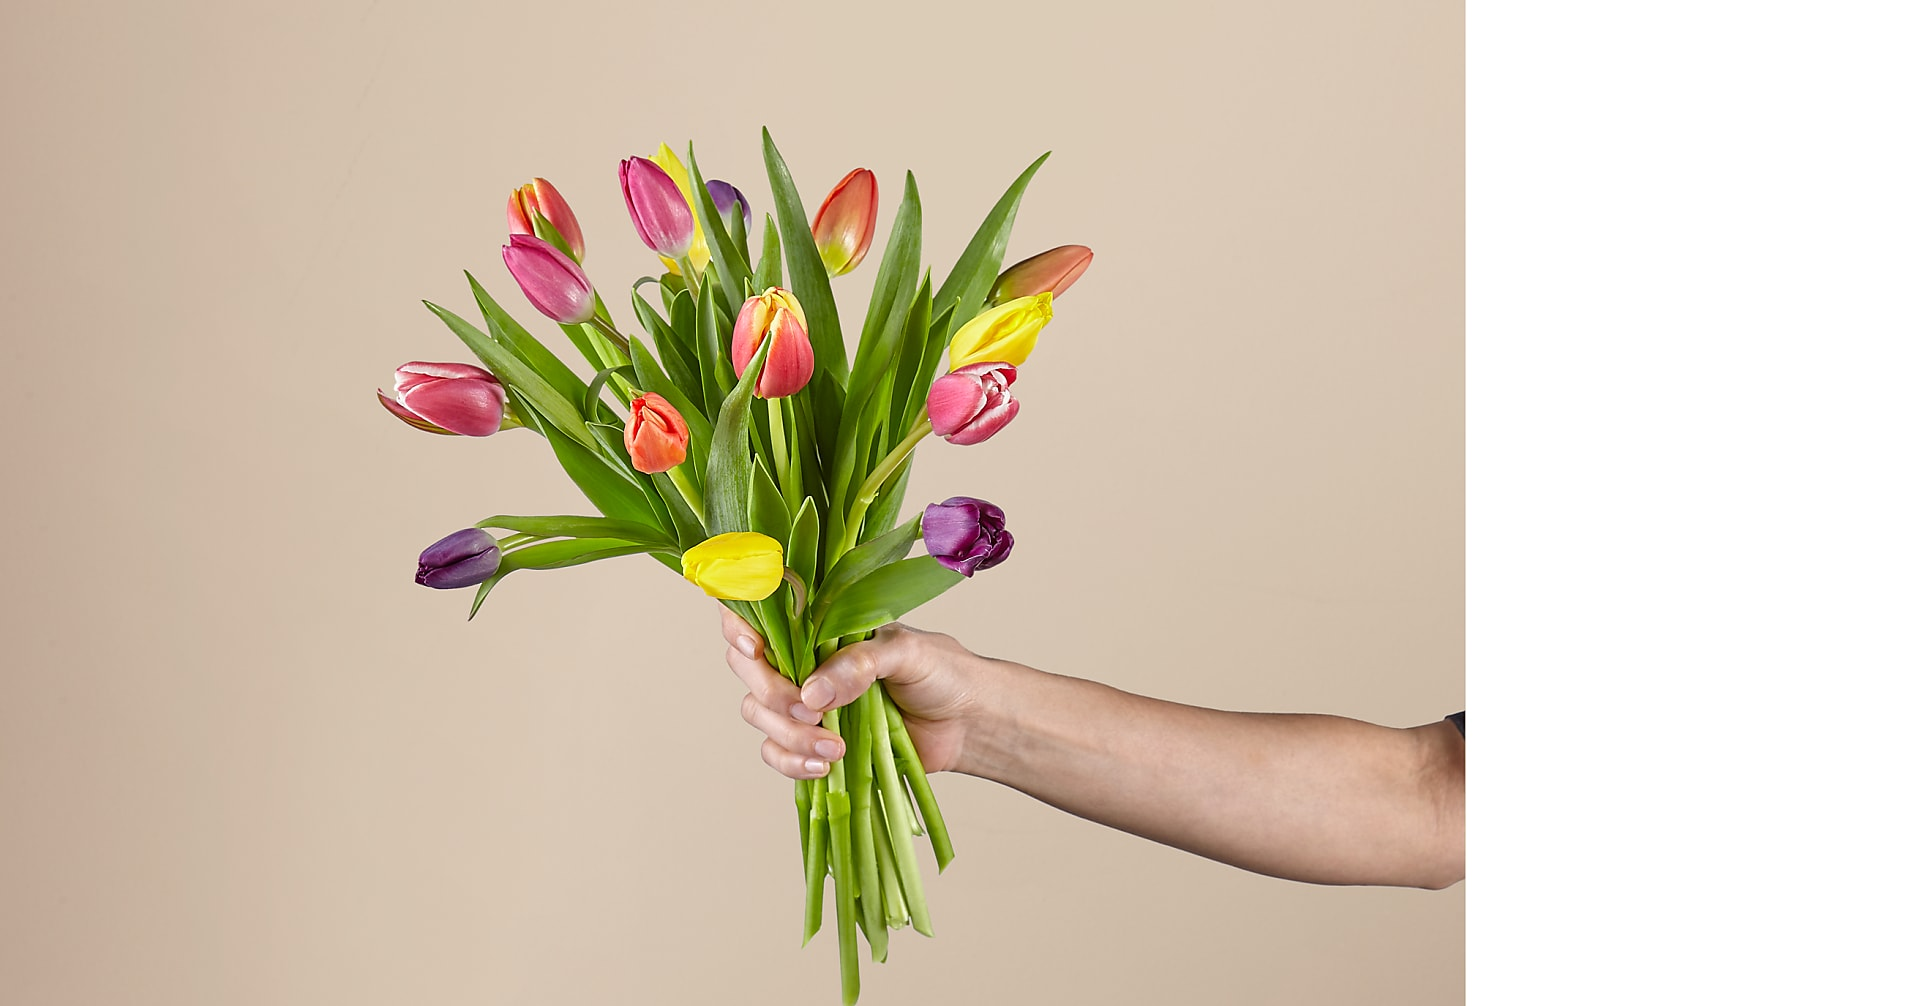 15 Multi-Colored Tulips with Vase - Image 2 Of 2